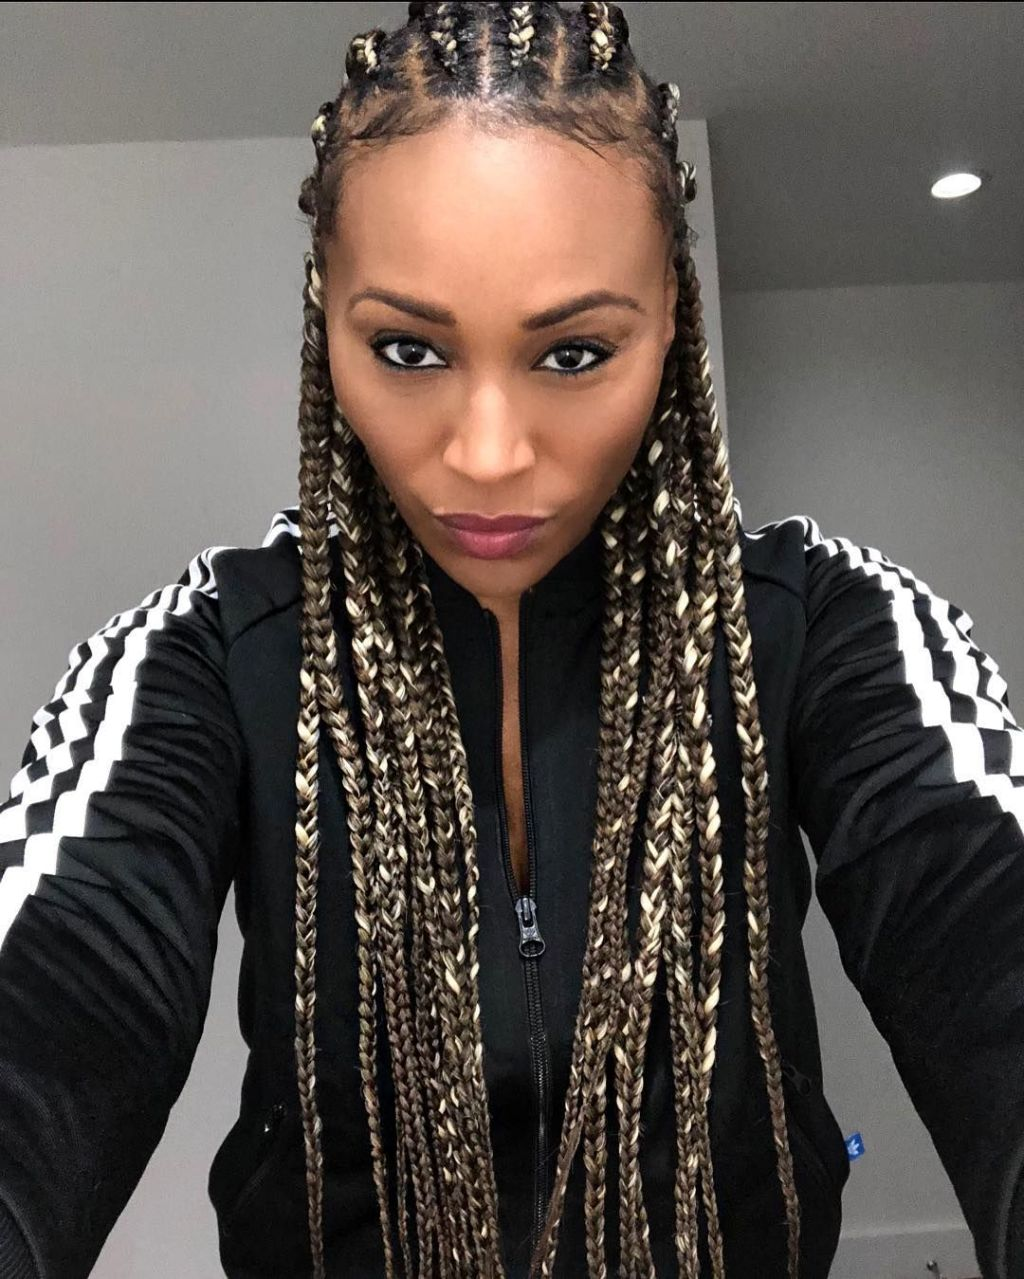 Cynthia Bailey Tells Fans And Followers To Vote Because This Is The Most Important Election Of Our Time